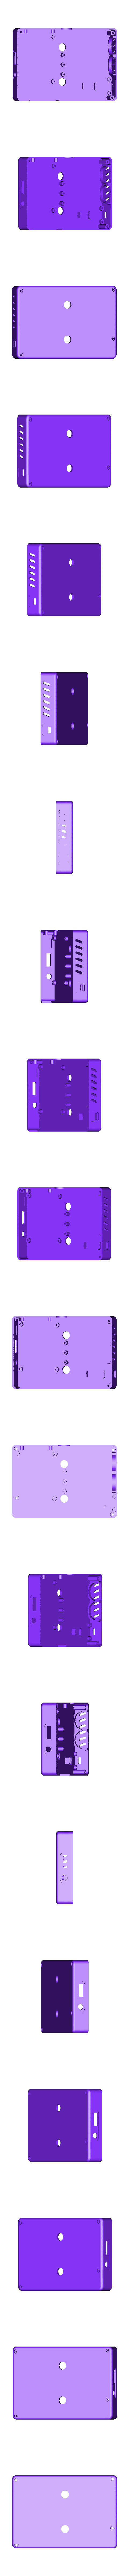 Rear_of_case.stl Download free STL file Portable Raspberry Pi game console • 3D printing object, Lassaalk